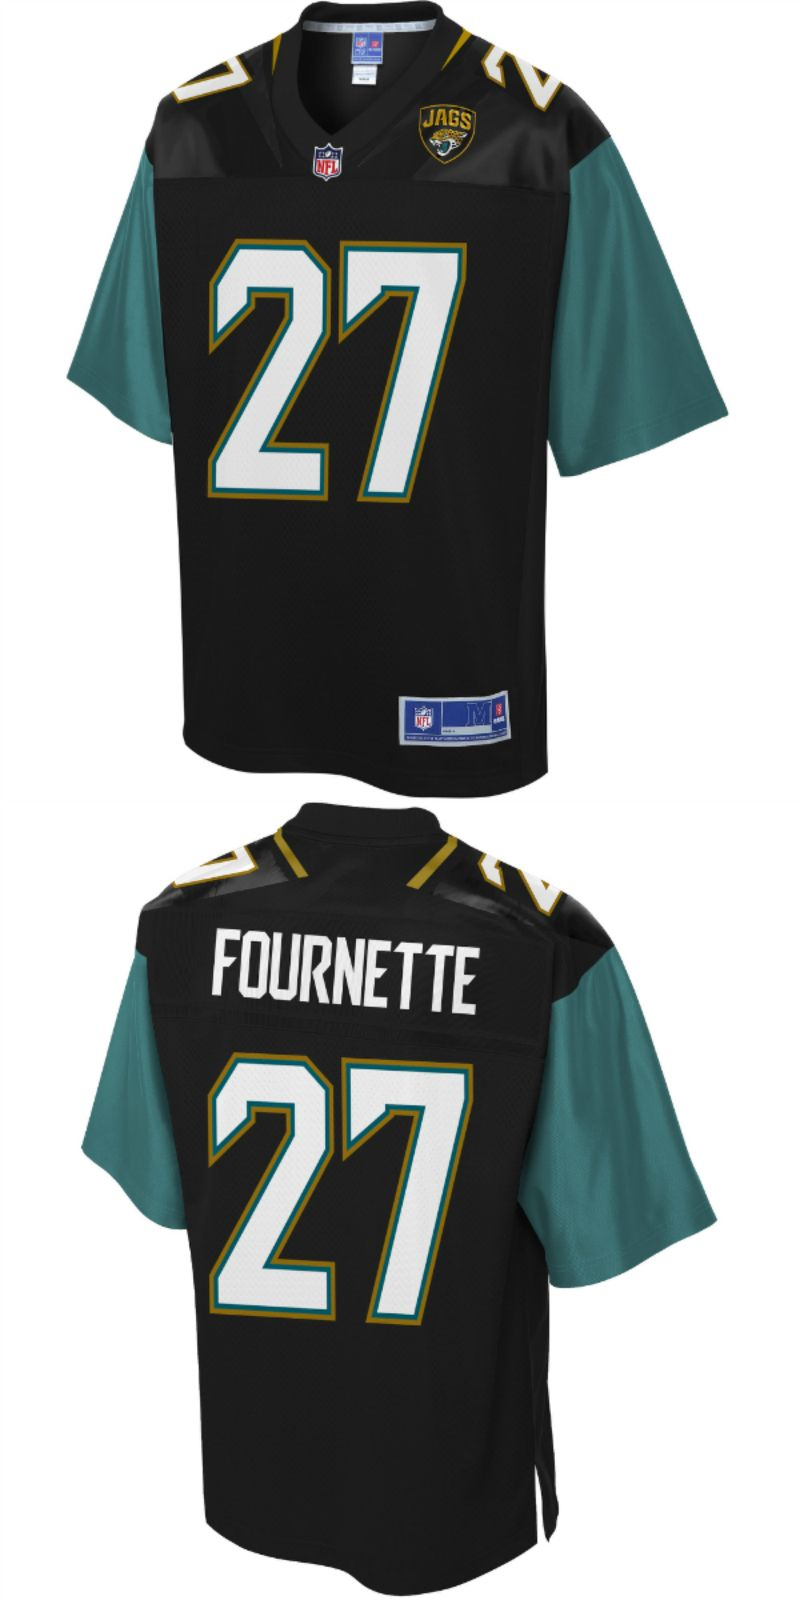 best service e8084 b3810 UP TO 70% OFF. Leonard Fournette Jacksonville Jaguars NFL ...